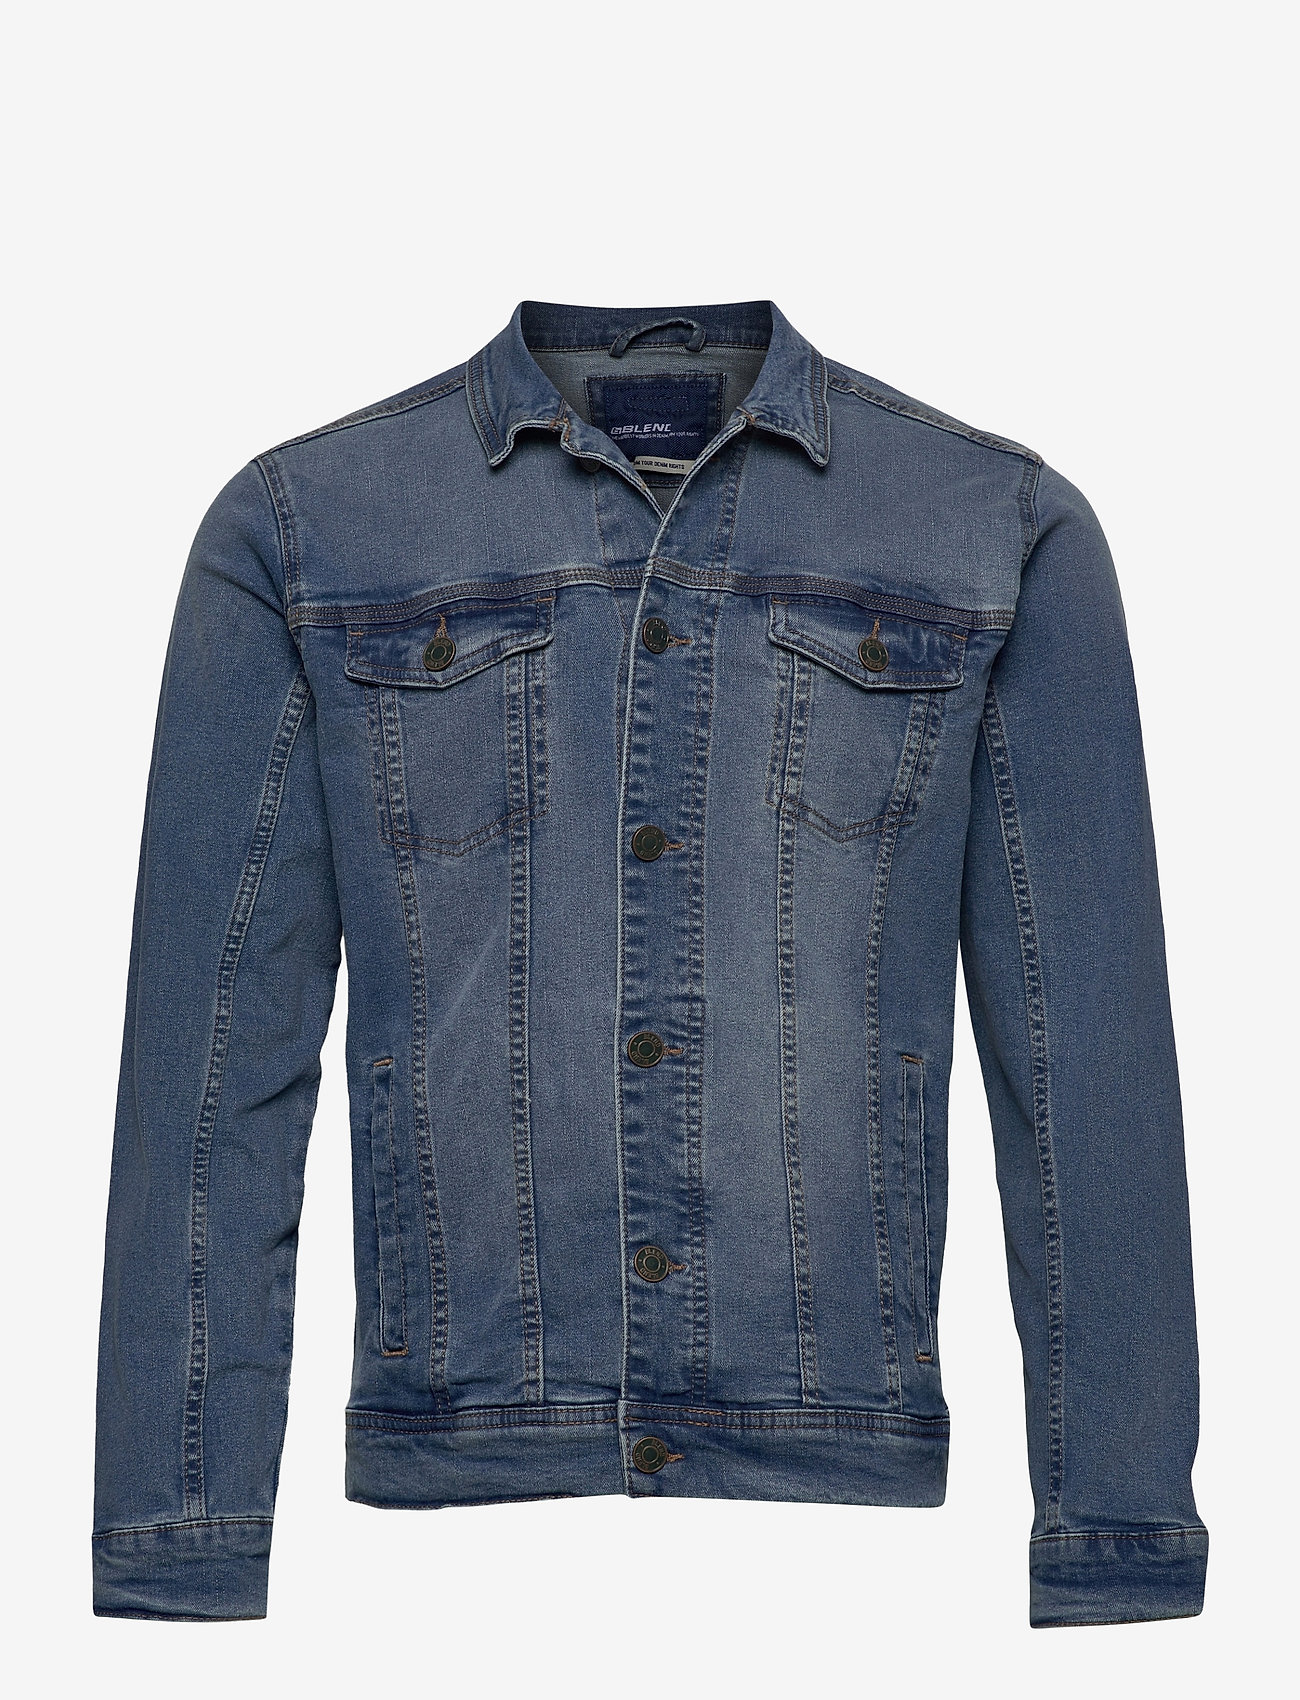 Blend - Outerwear - NOOS - spijkerjassen - denim middle blue - 0